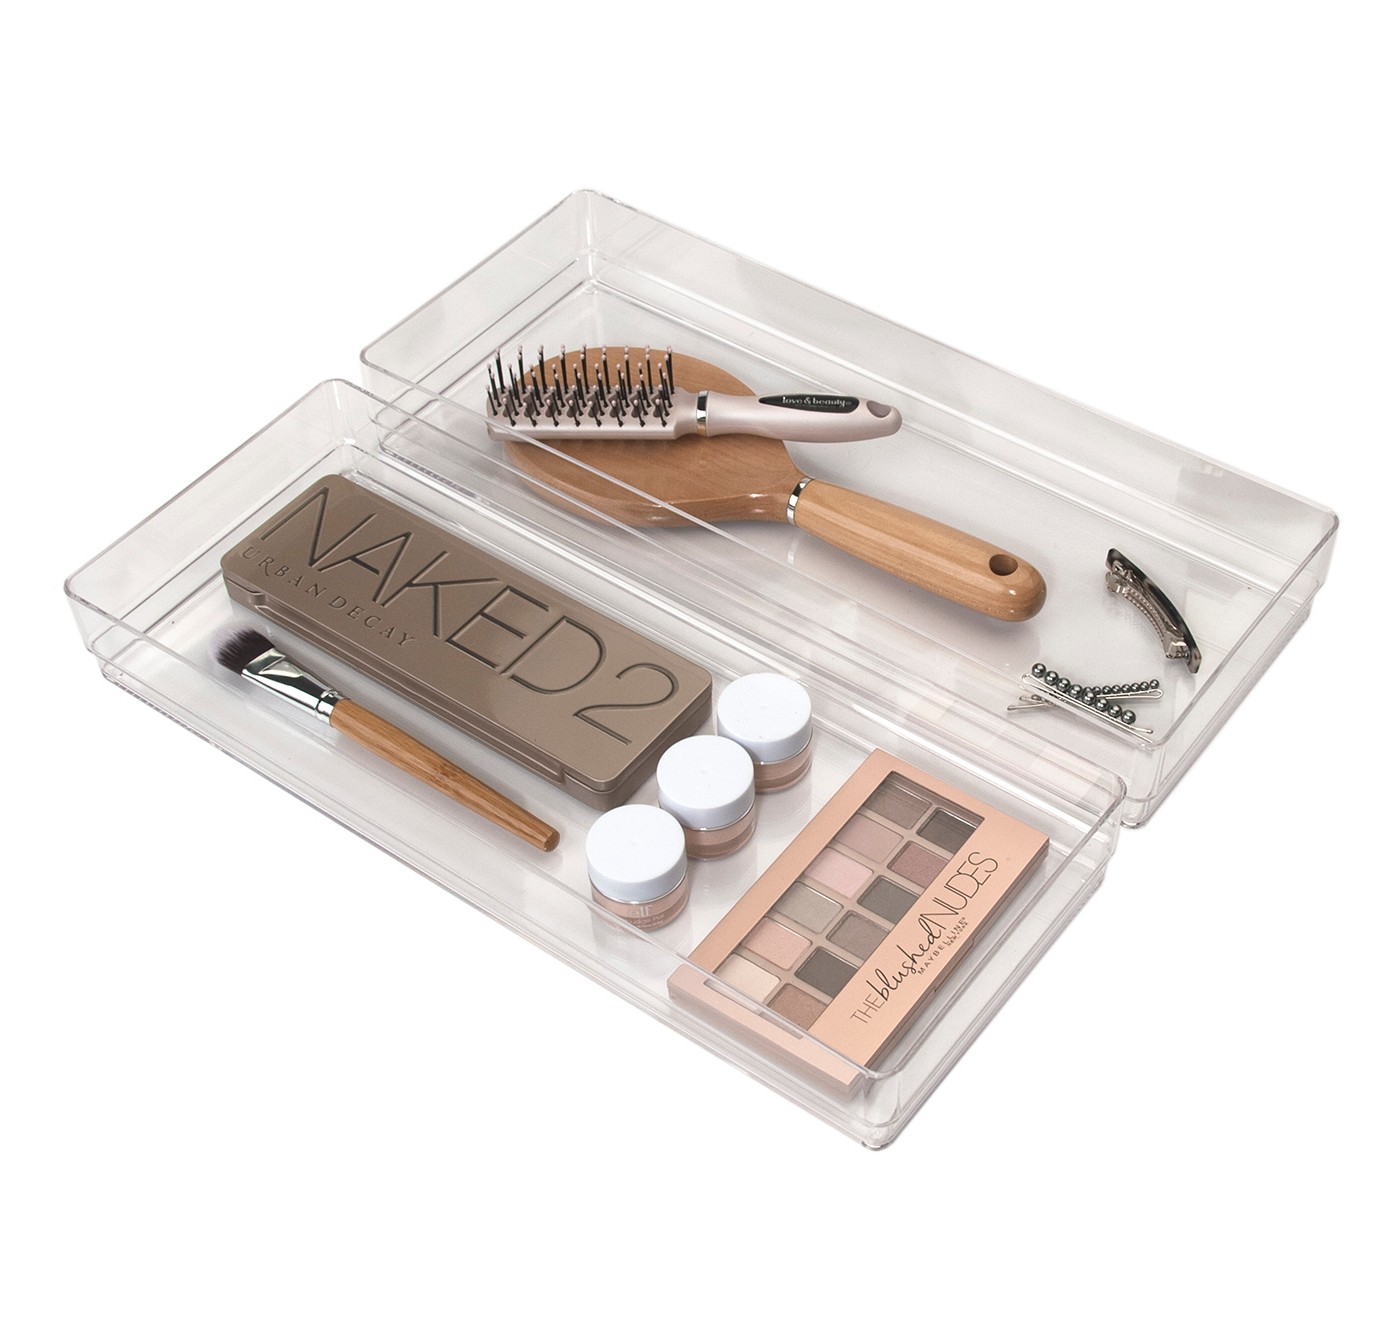 0e55334db10 Another must have bathroom organizer is the Threshold Hair Tools Organizer.  For less than $30, all of your hot hair tools can be organized and help  keep ...